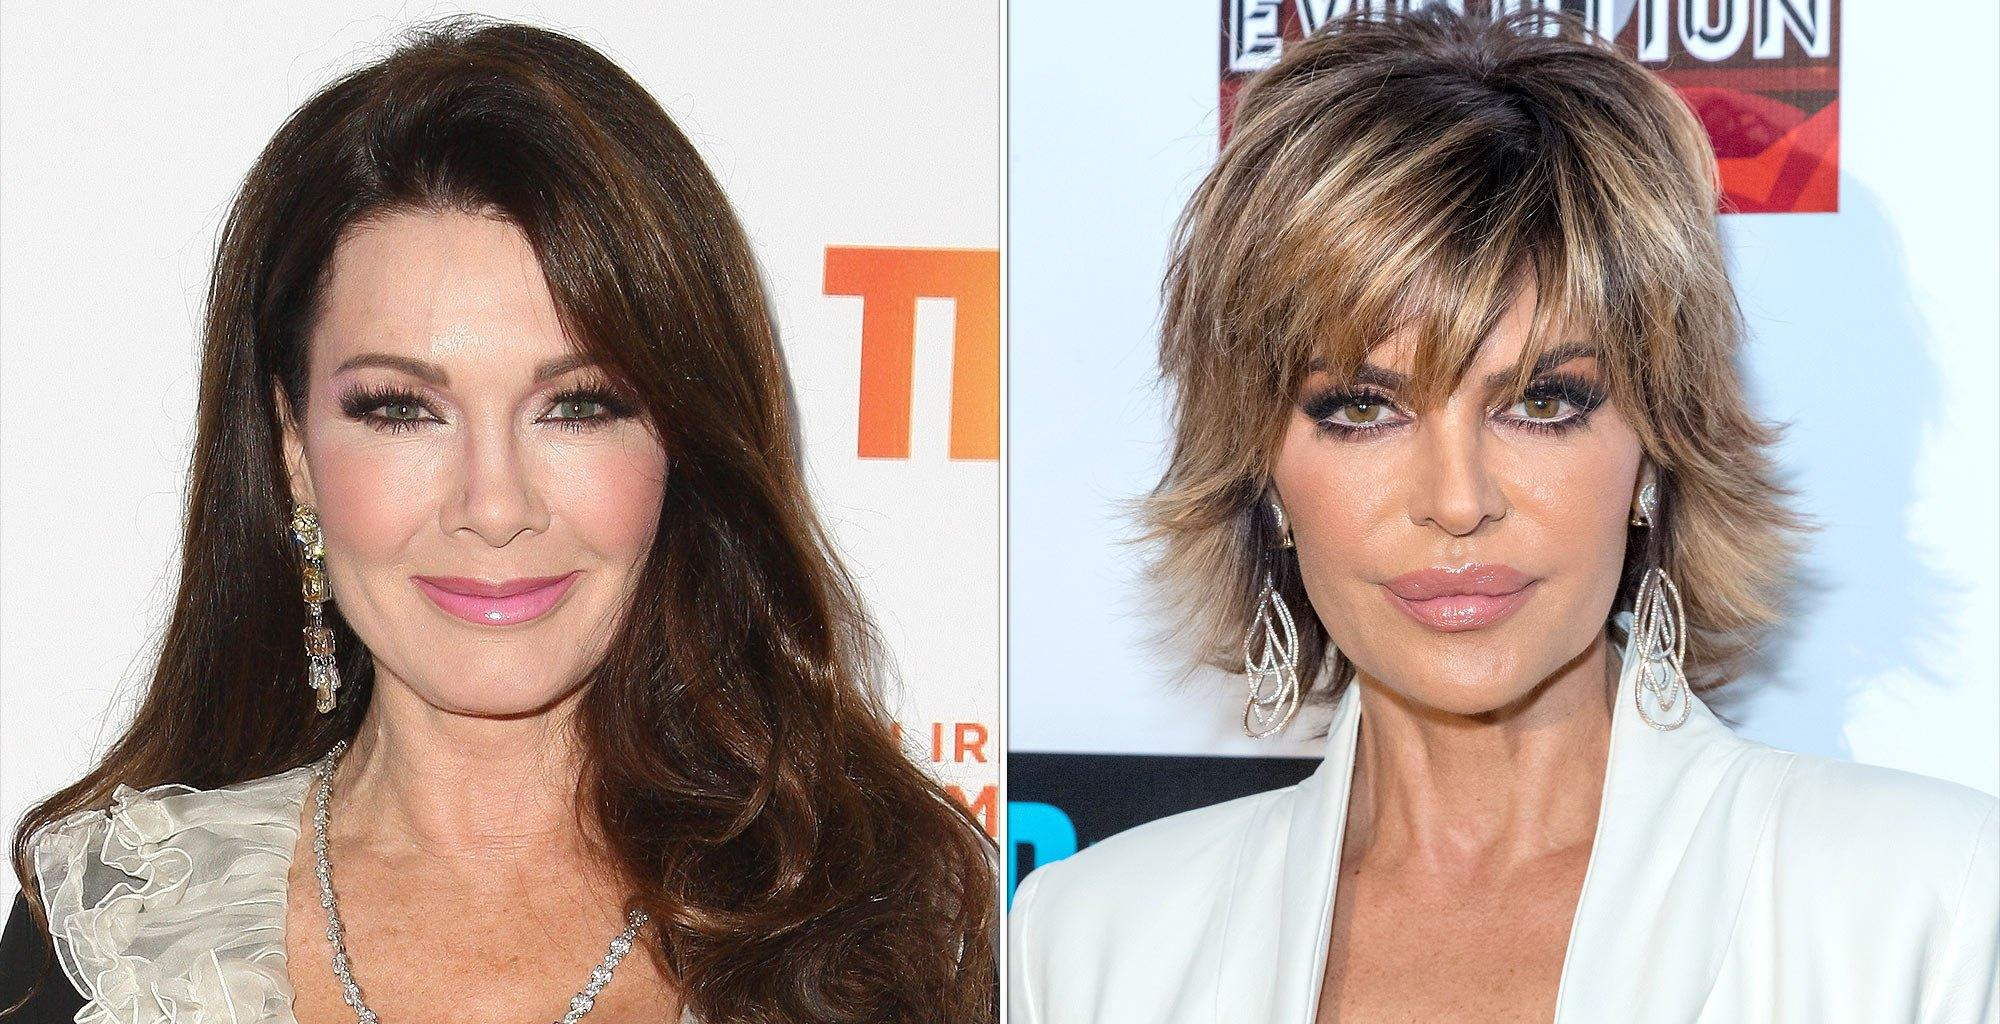 Lisa Rinna Says Lisa Vanderpump Gets Preferential Treatment From Bravo - She Should've Been Fired For Refusing To Shoot RHOBH!